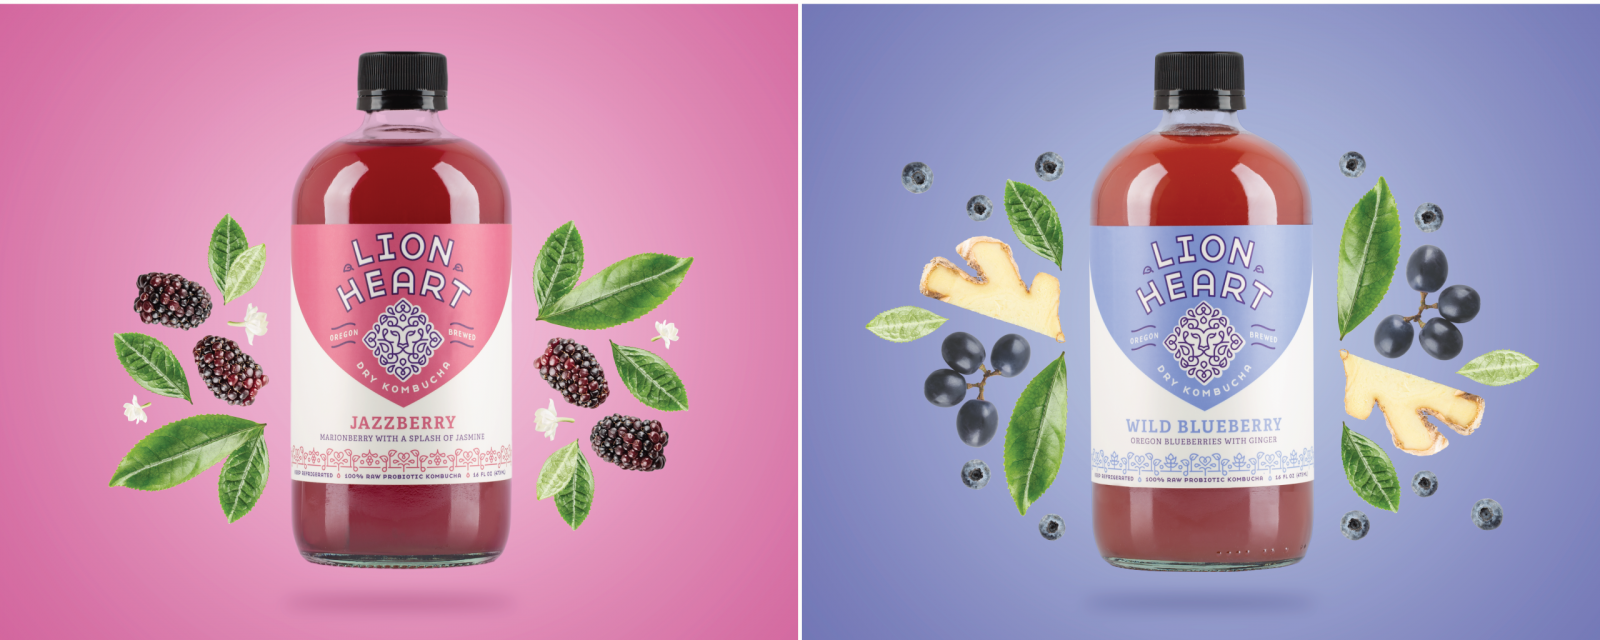 Lion Heart packaging jazzberry wild blueberry